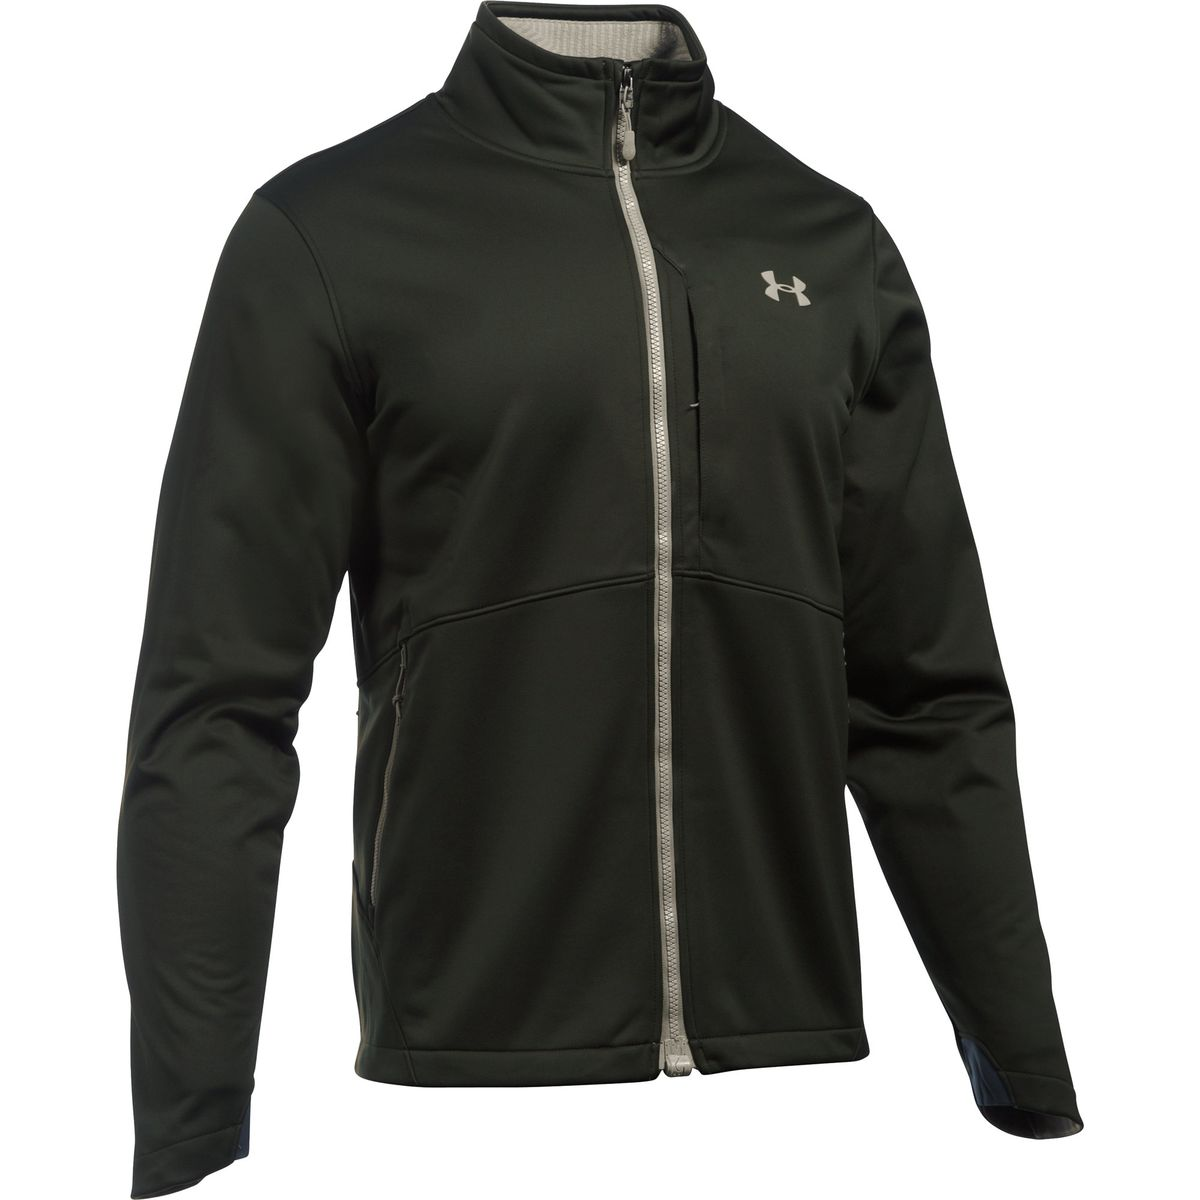 68a63c82cc42 under armour jackets mens cheap   OFF62% The Largest Catalog Discounts